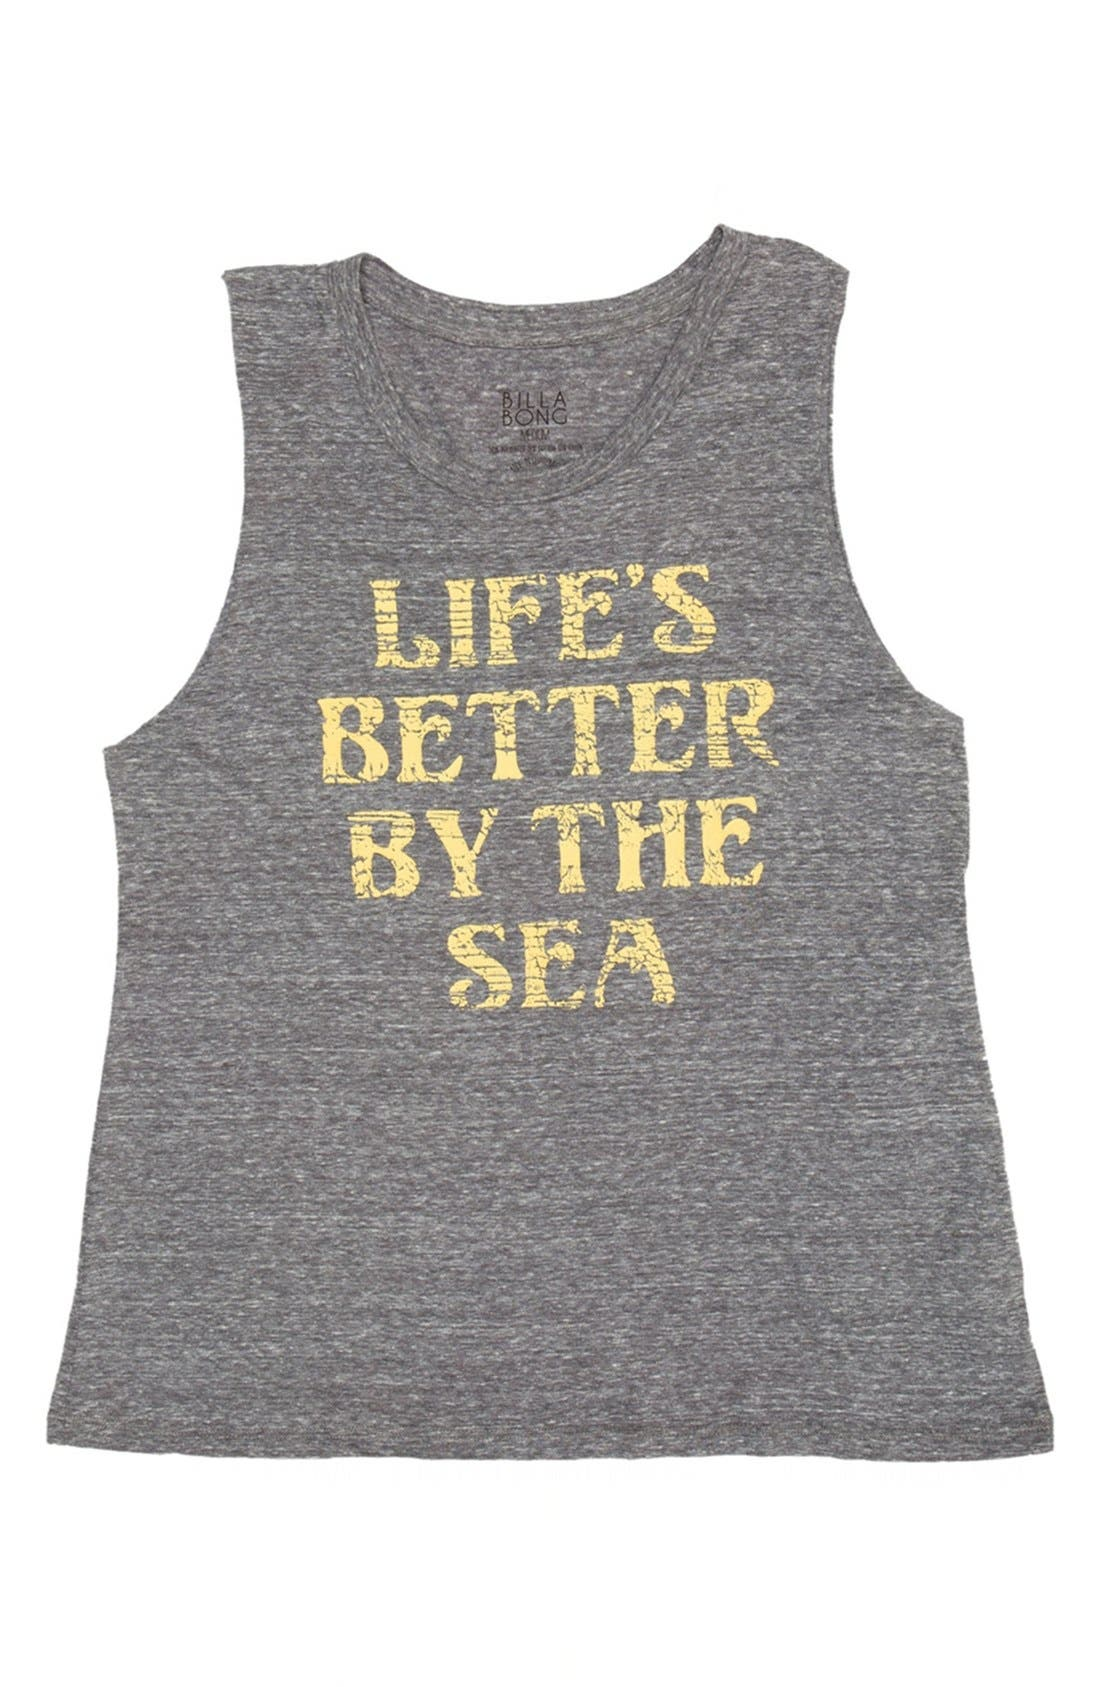 Alternate Image 1 Selected - Billabong 'Sea is Better' Graphic Muscle Tank